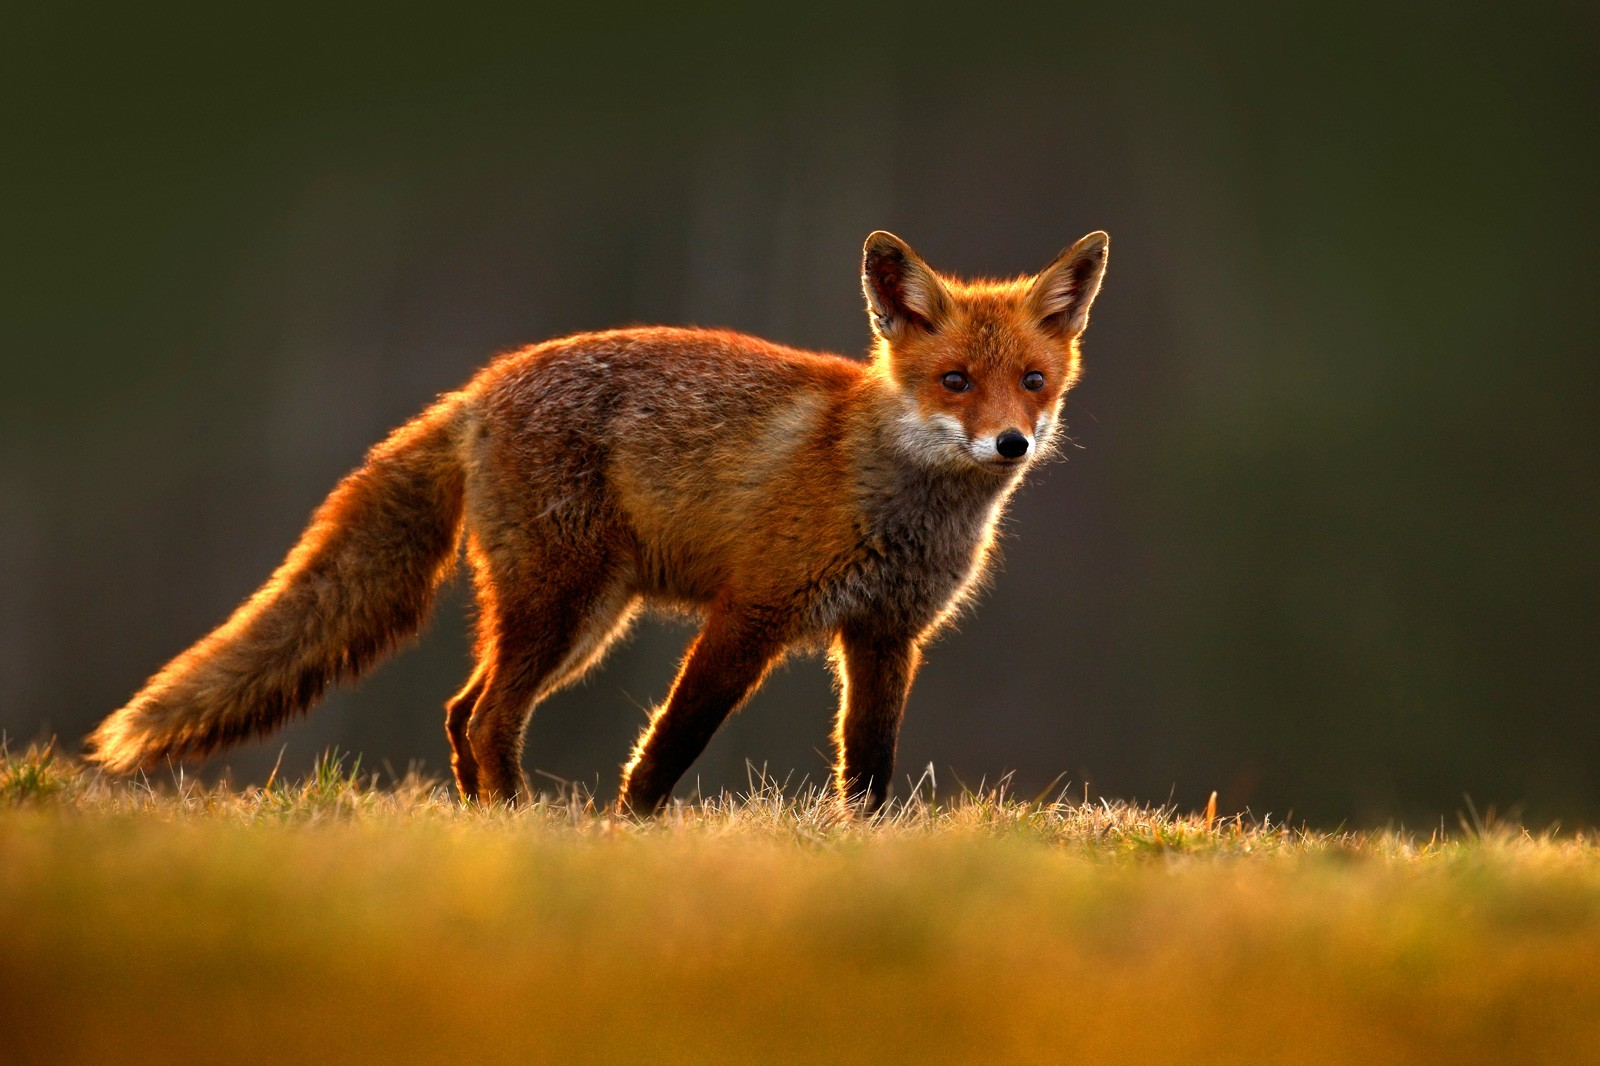 Red Fox Symbolism And Meaning On Whats Your Sign